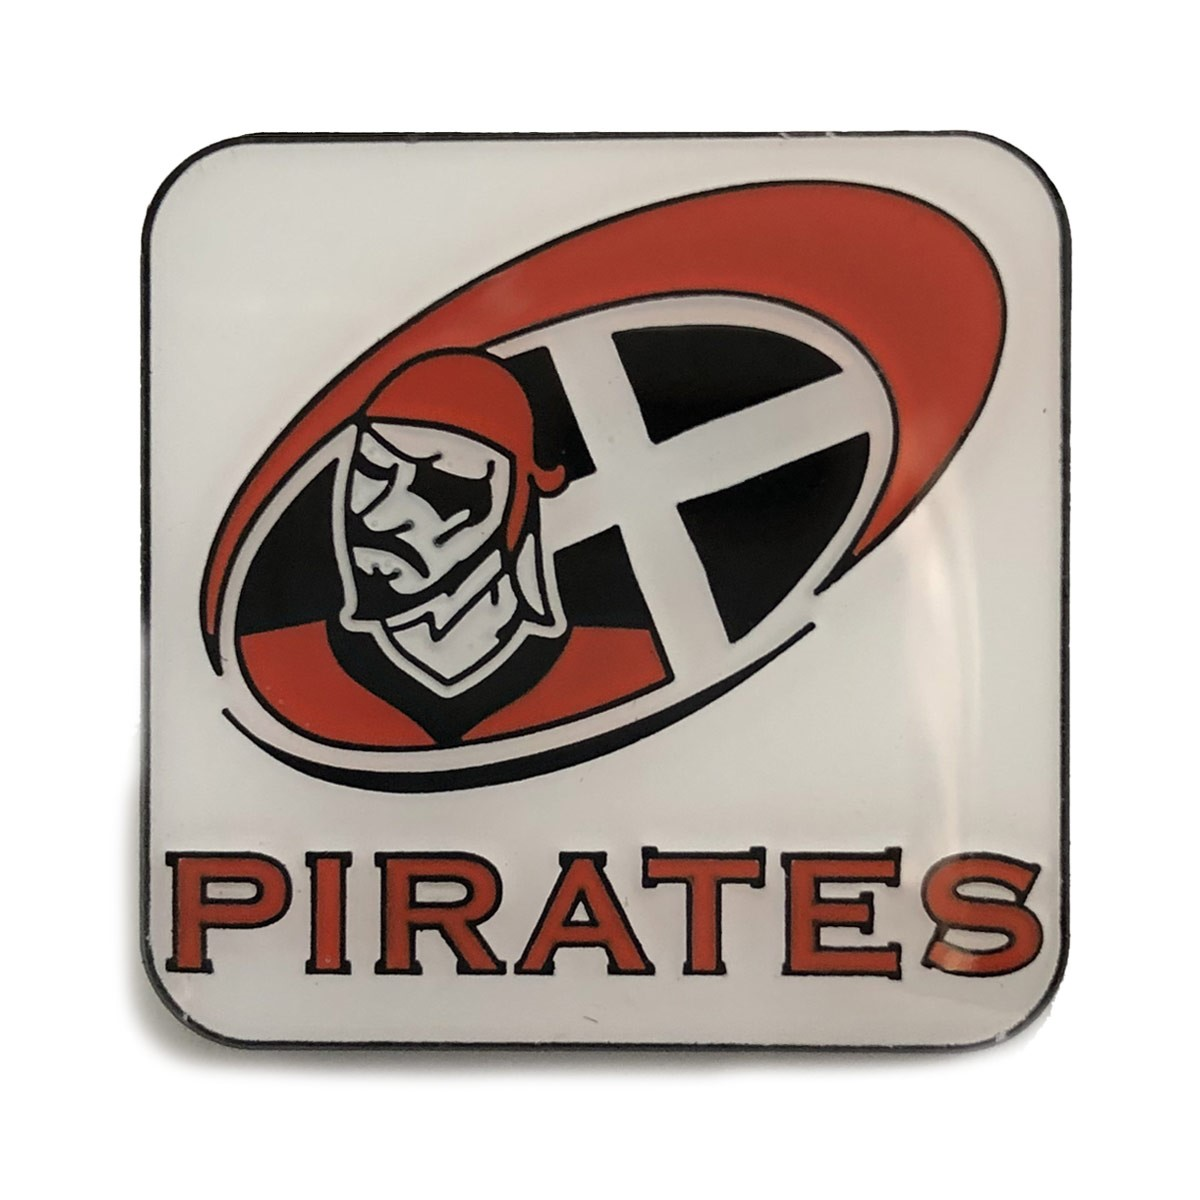 Cornish Pirates Pin Badge